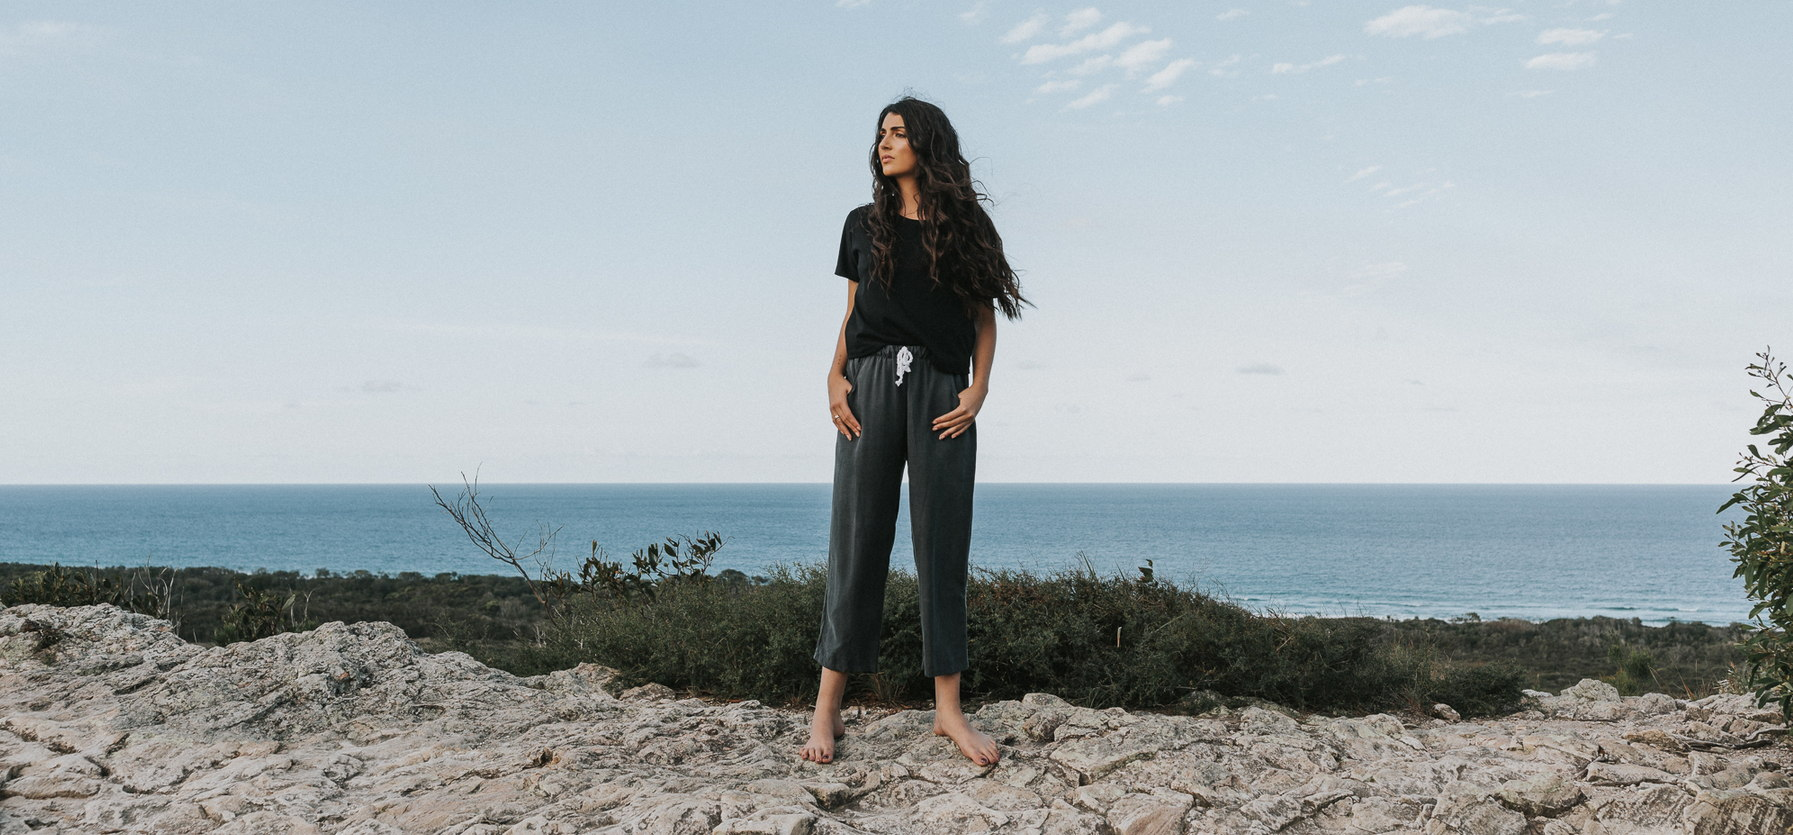 Tasi Travels' ethically & sustainably produced men's and women's fashion @ Ecoture